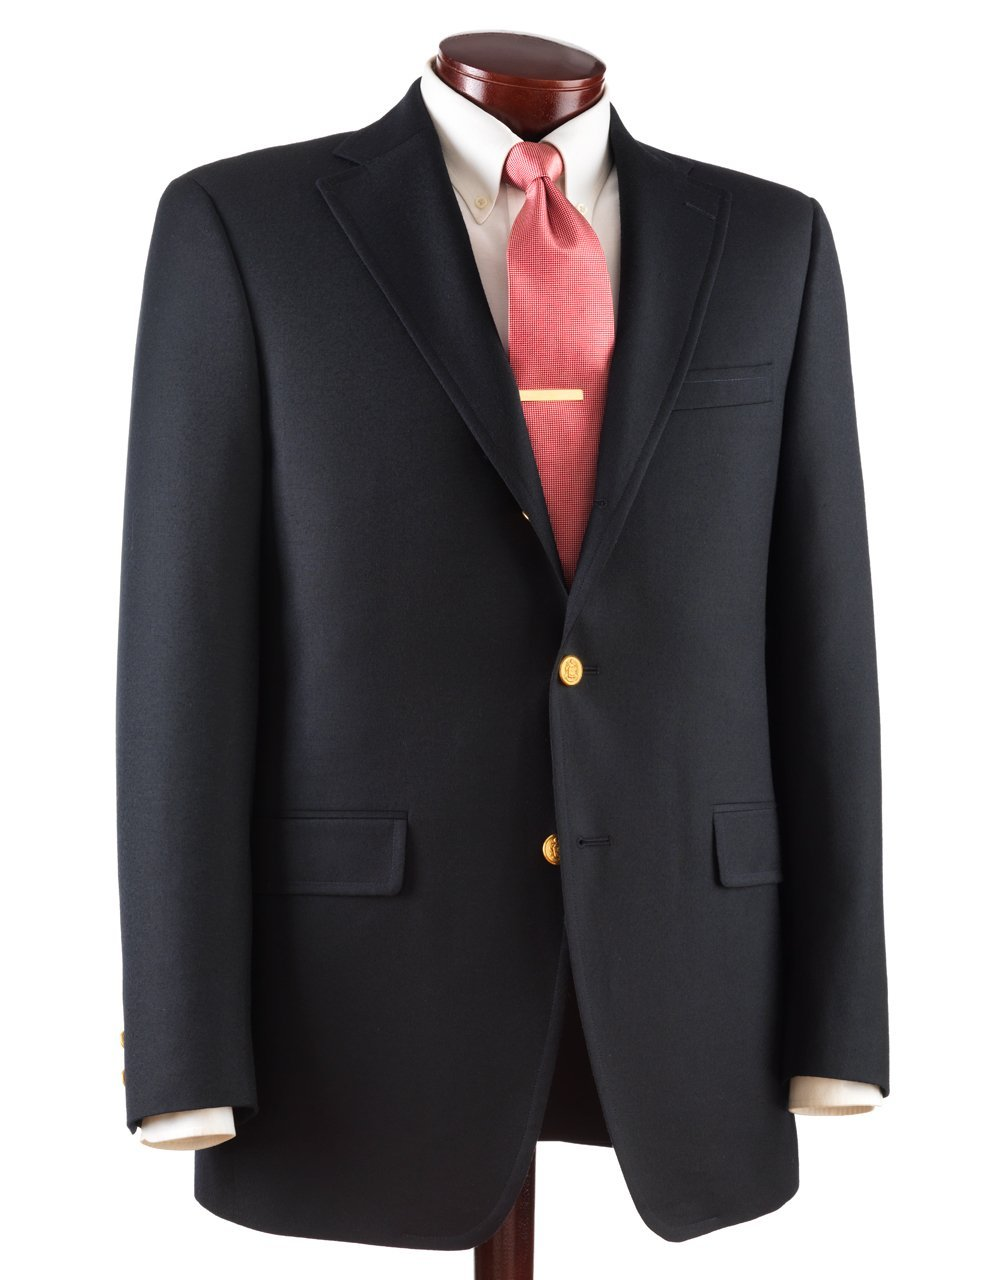 NAVY WOOL - TRIM FIT